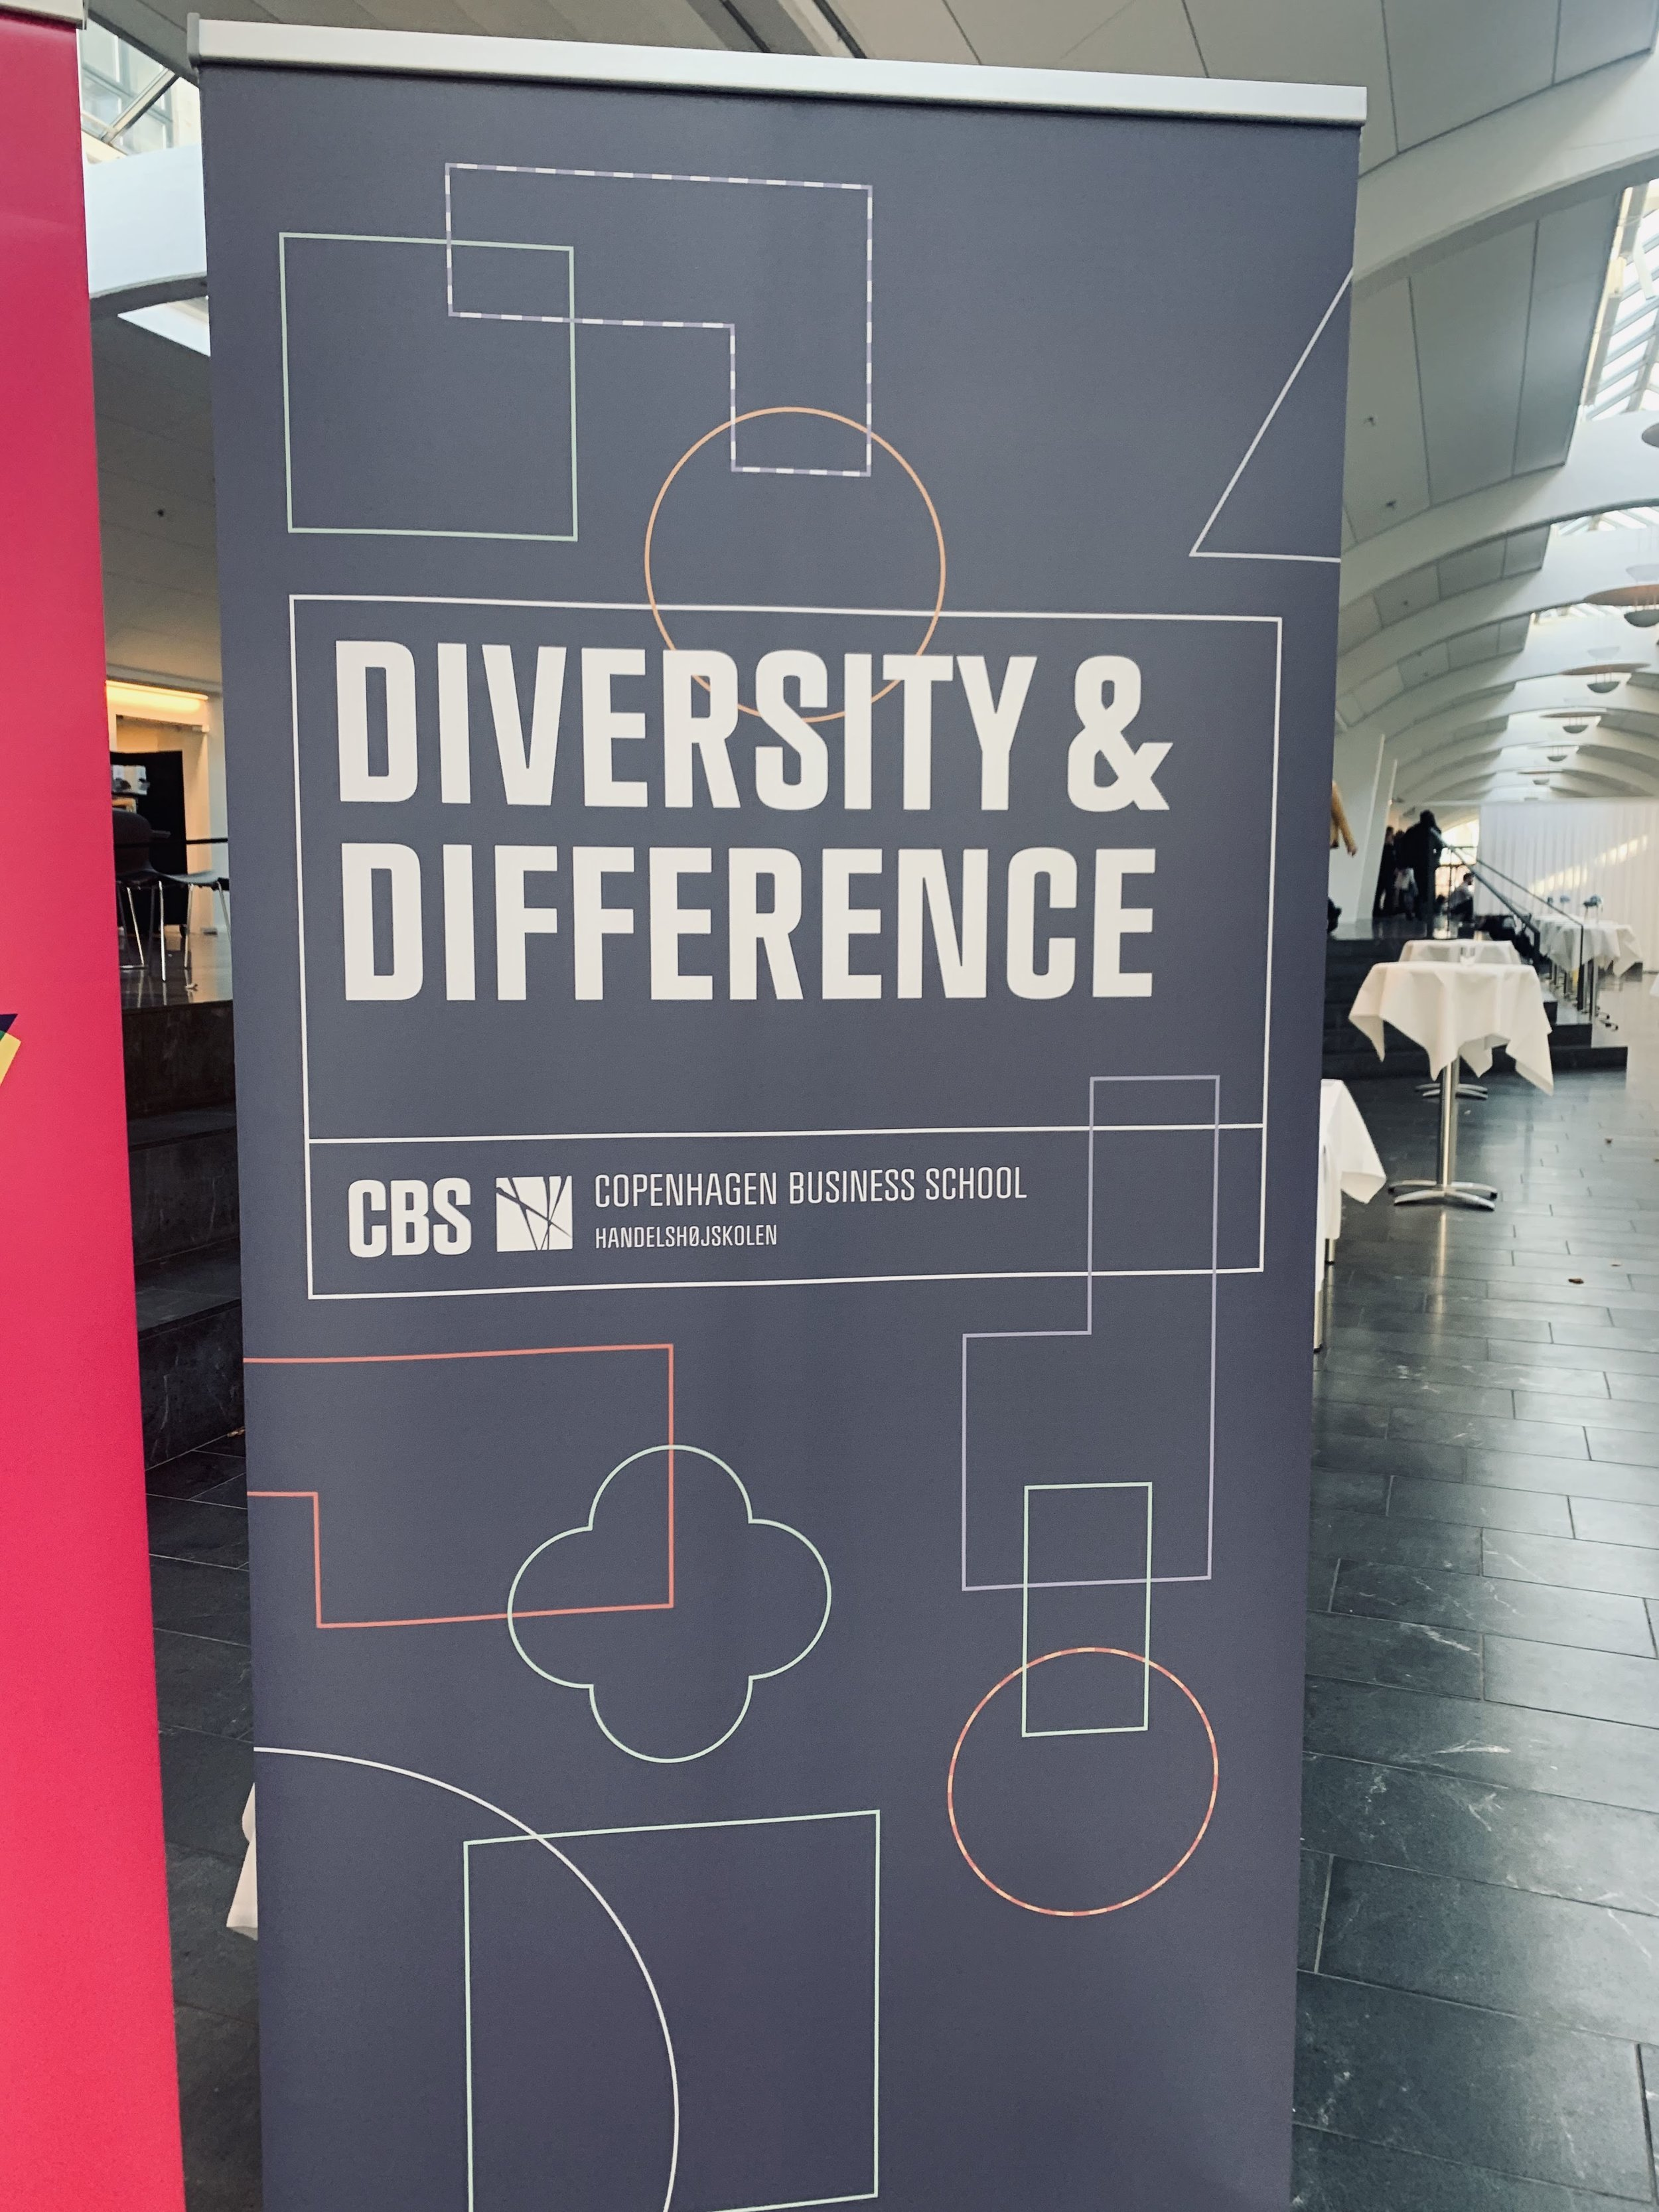 Celebrating Diversity and Difference at Copenhagen Business School (CBS) in Denmark — A Poem About Challenging My Identities, Norms, and Stereotypes